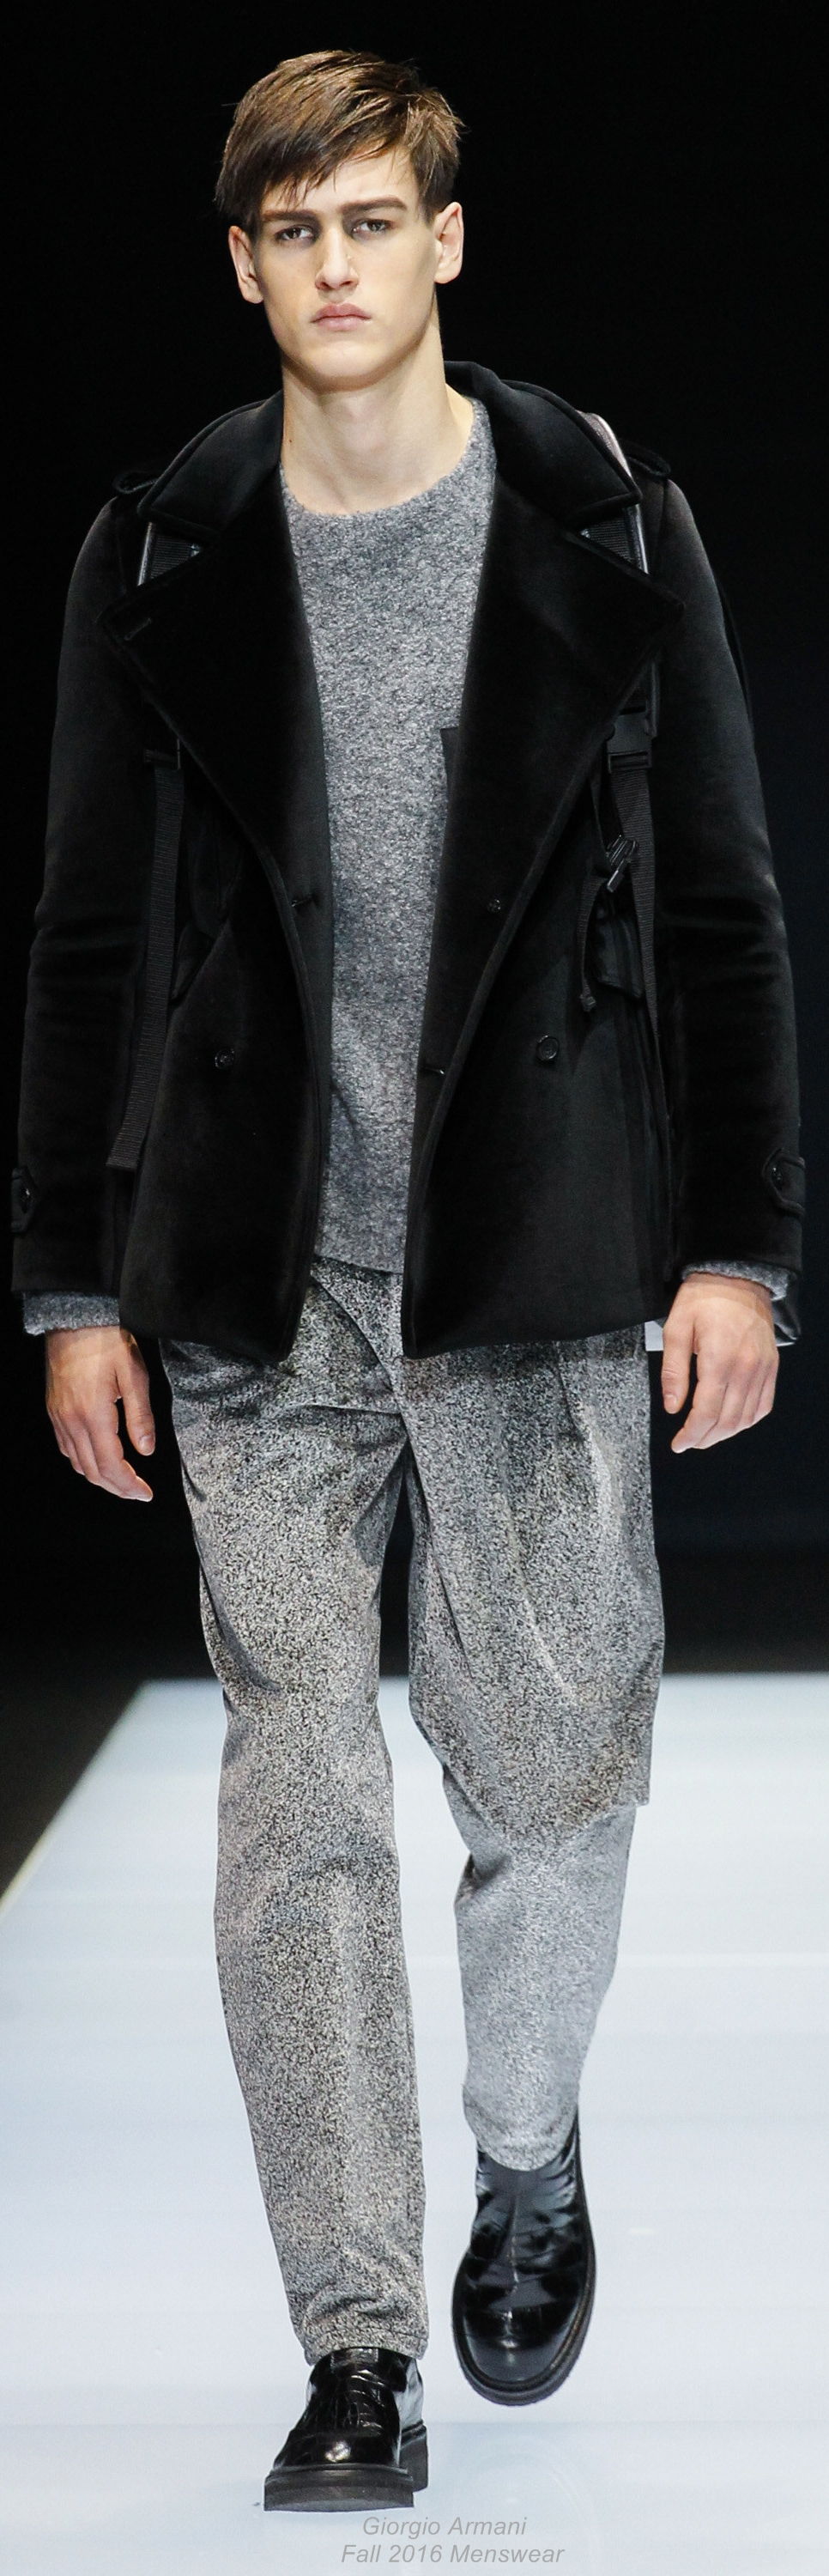 Giorgio armani fall menswear men casual dress pinterest